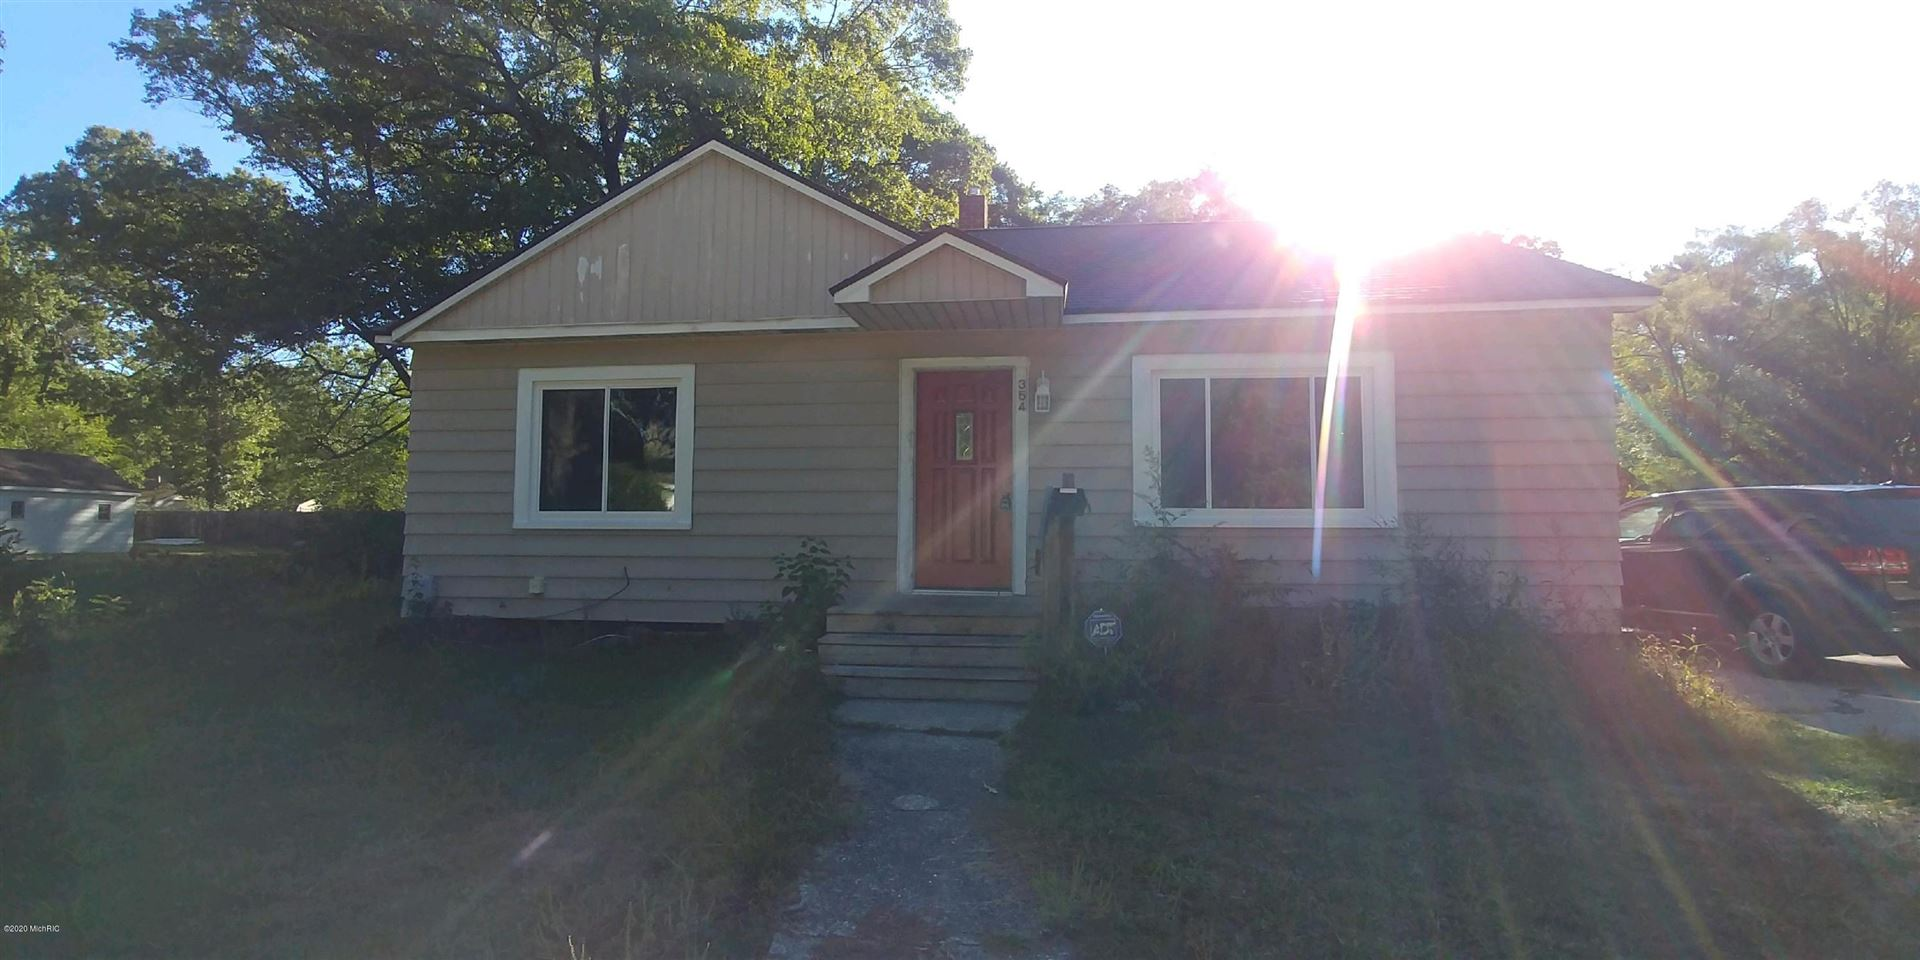 Photo of 354 Dratz Street, Muskegon, MI 49442 (MLS # 20039141)